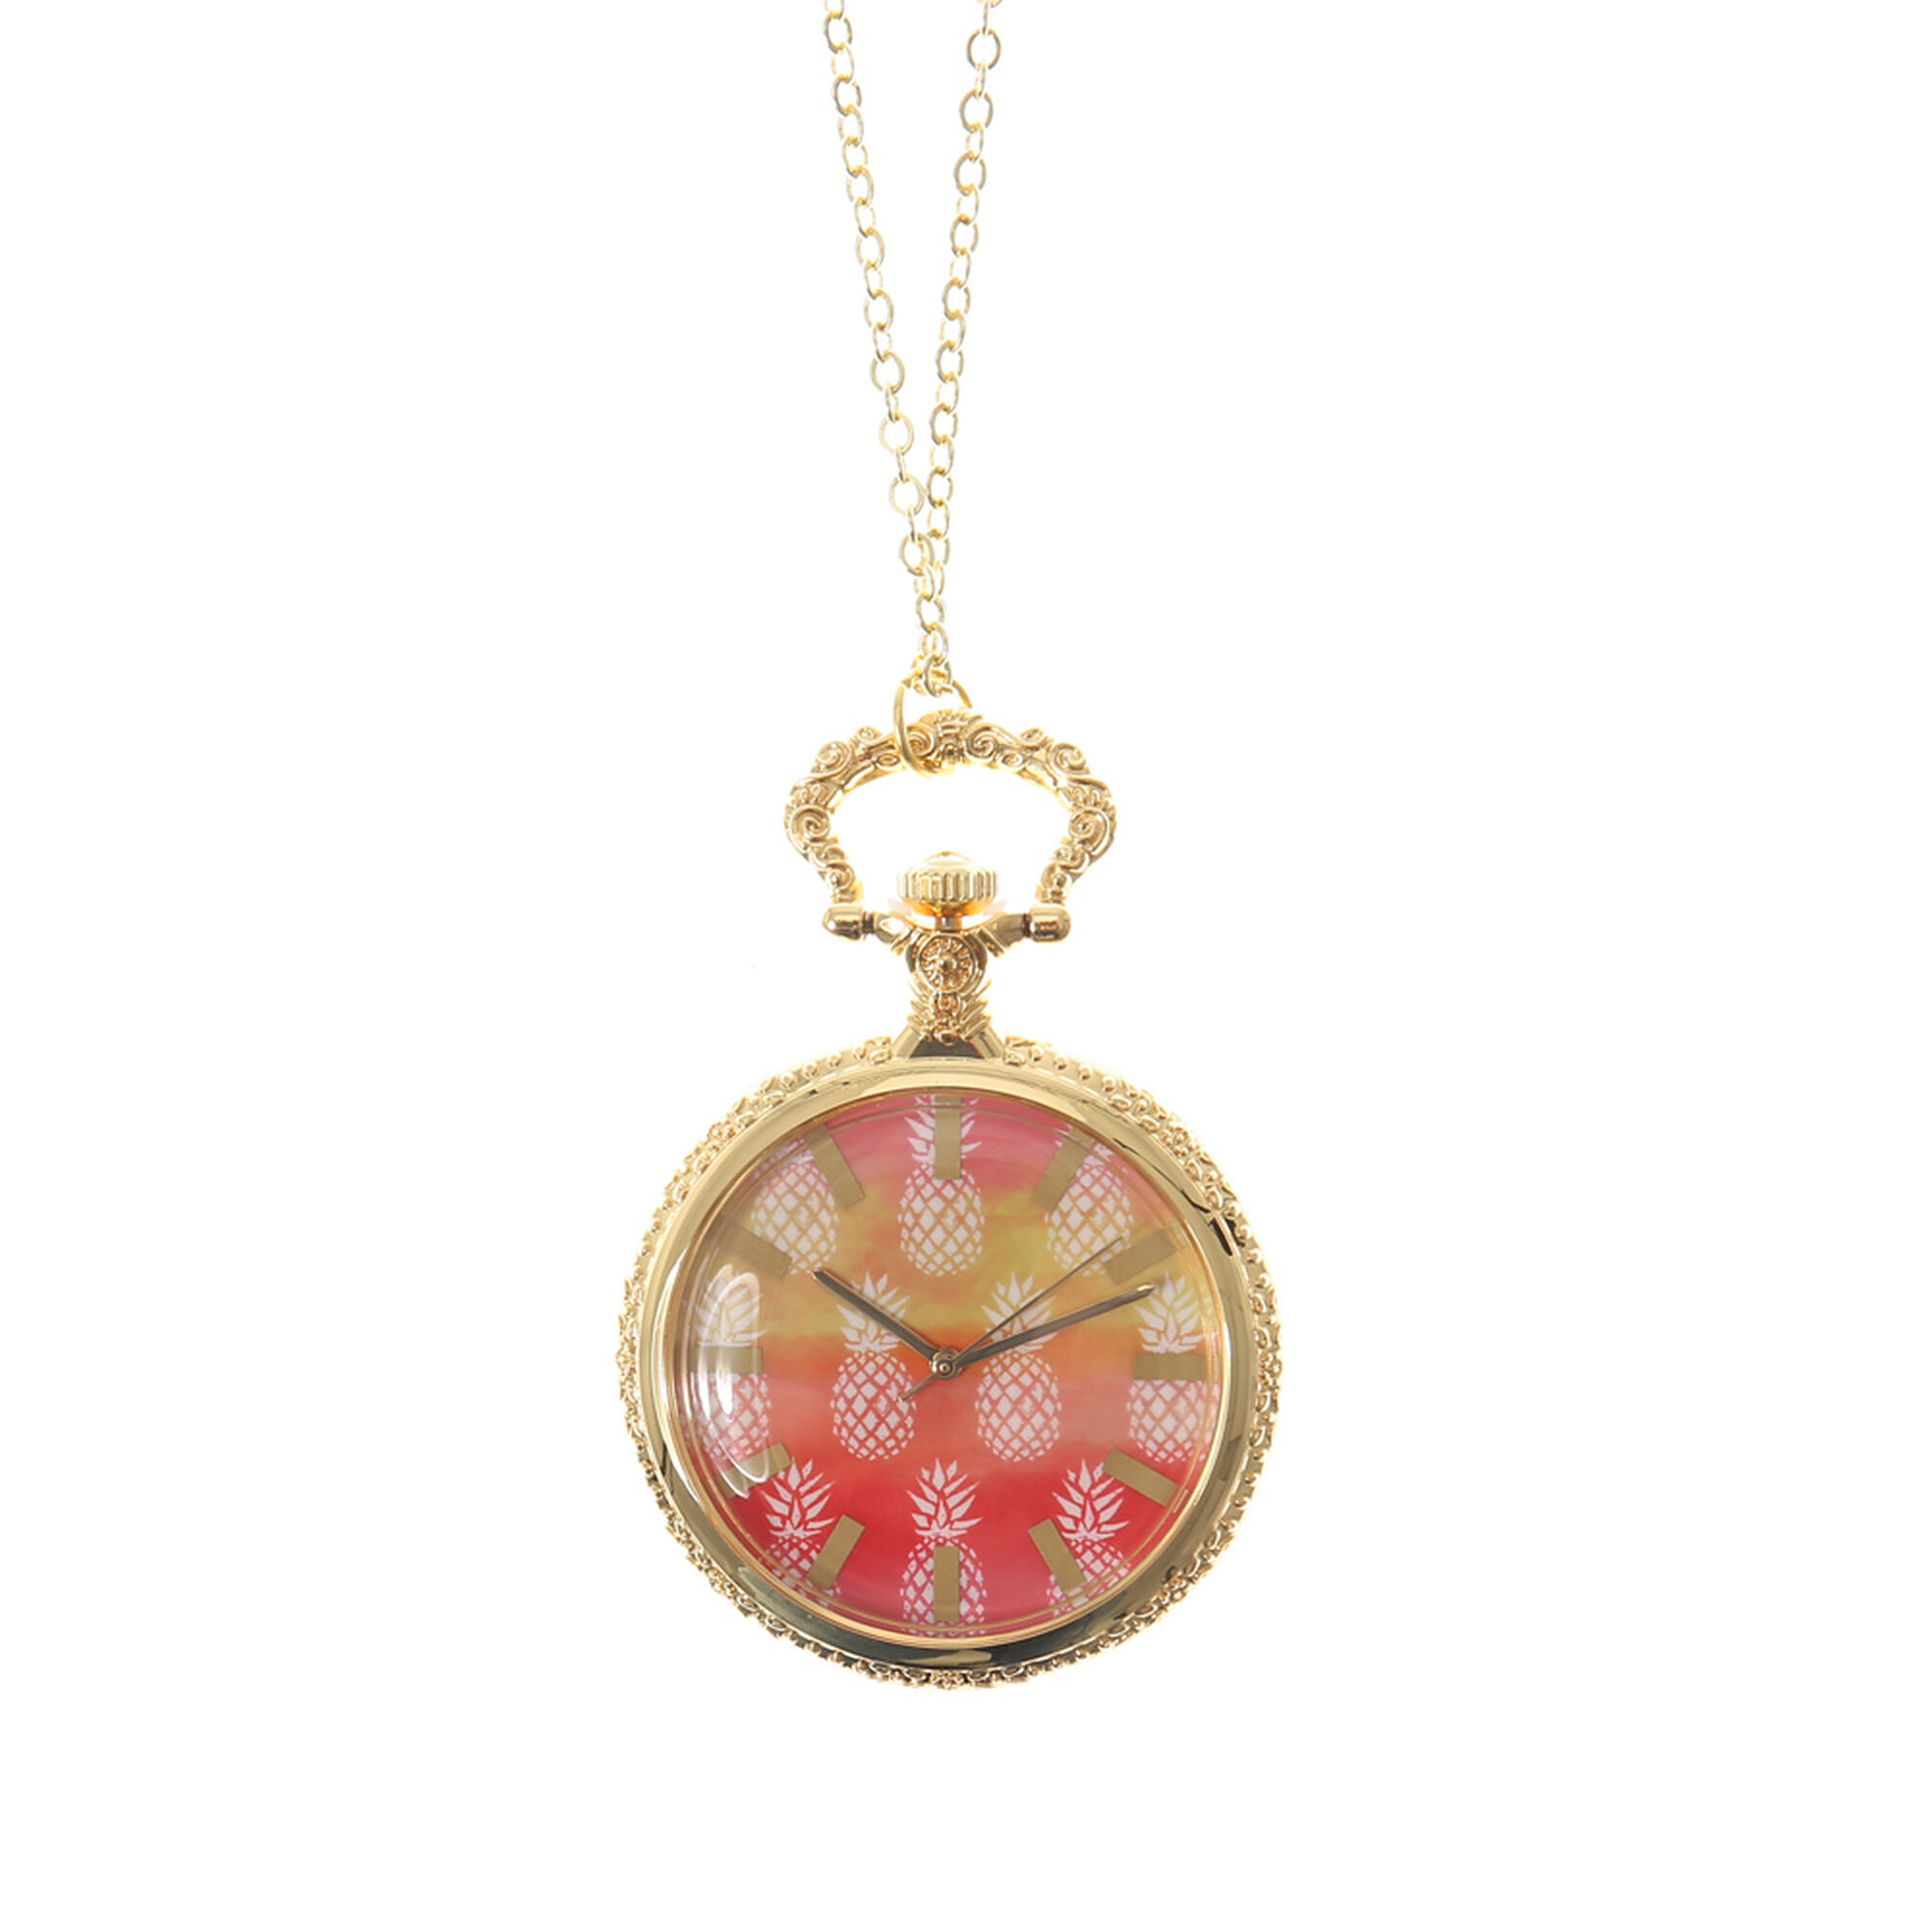 Gold Pineapple Print Watch Chain Necklace